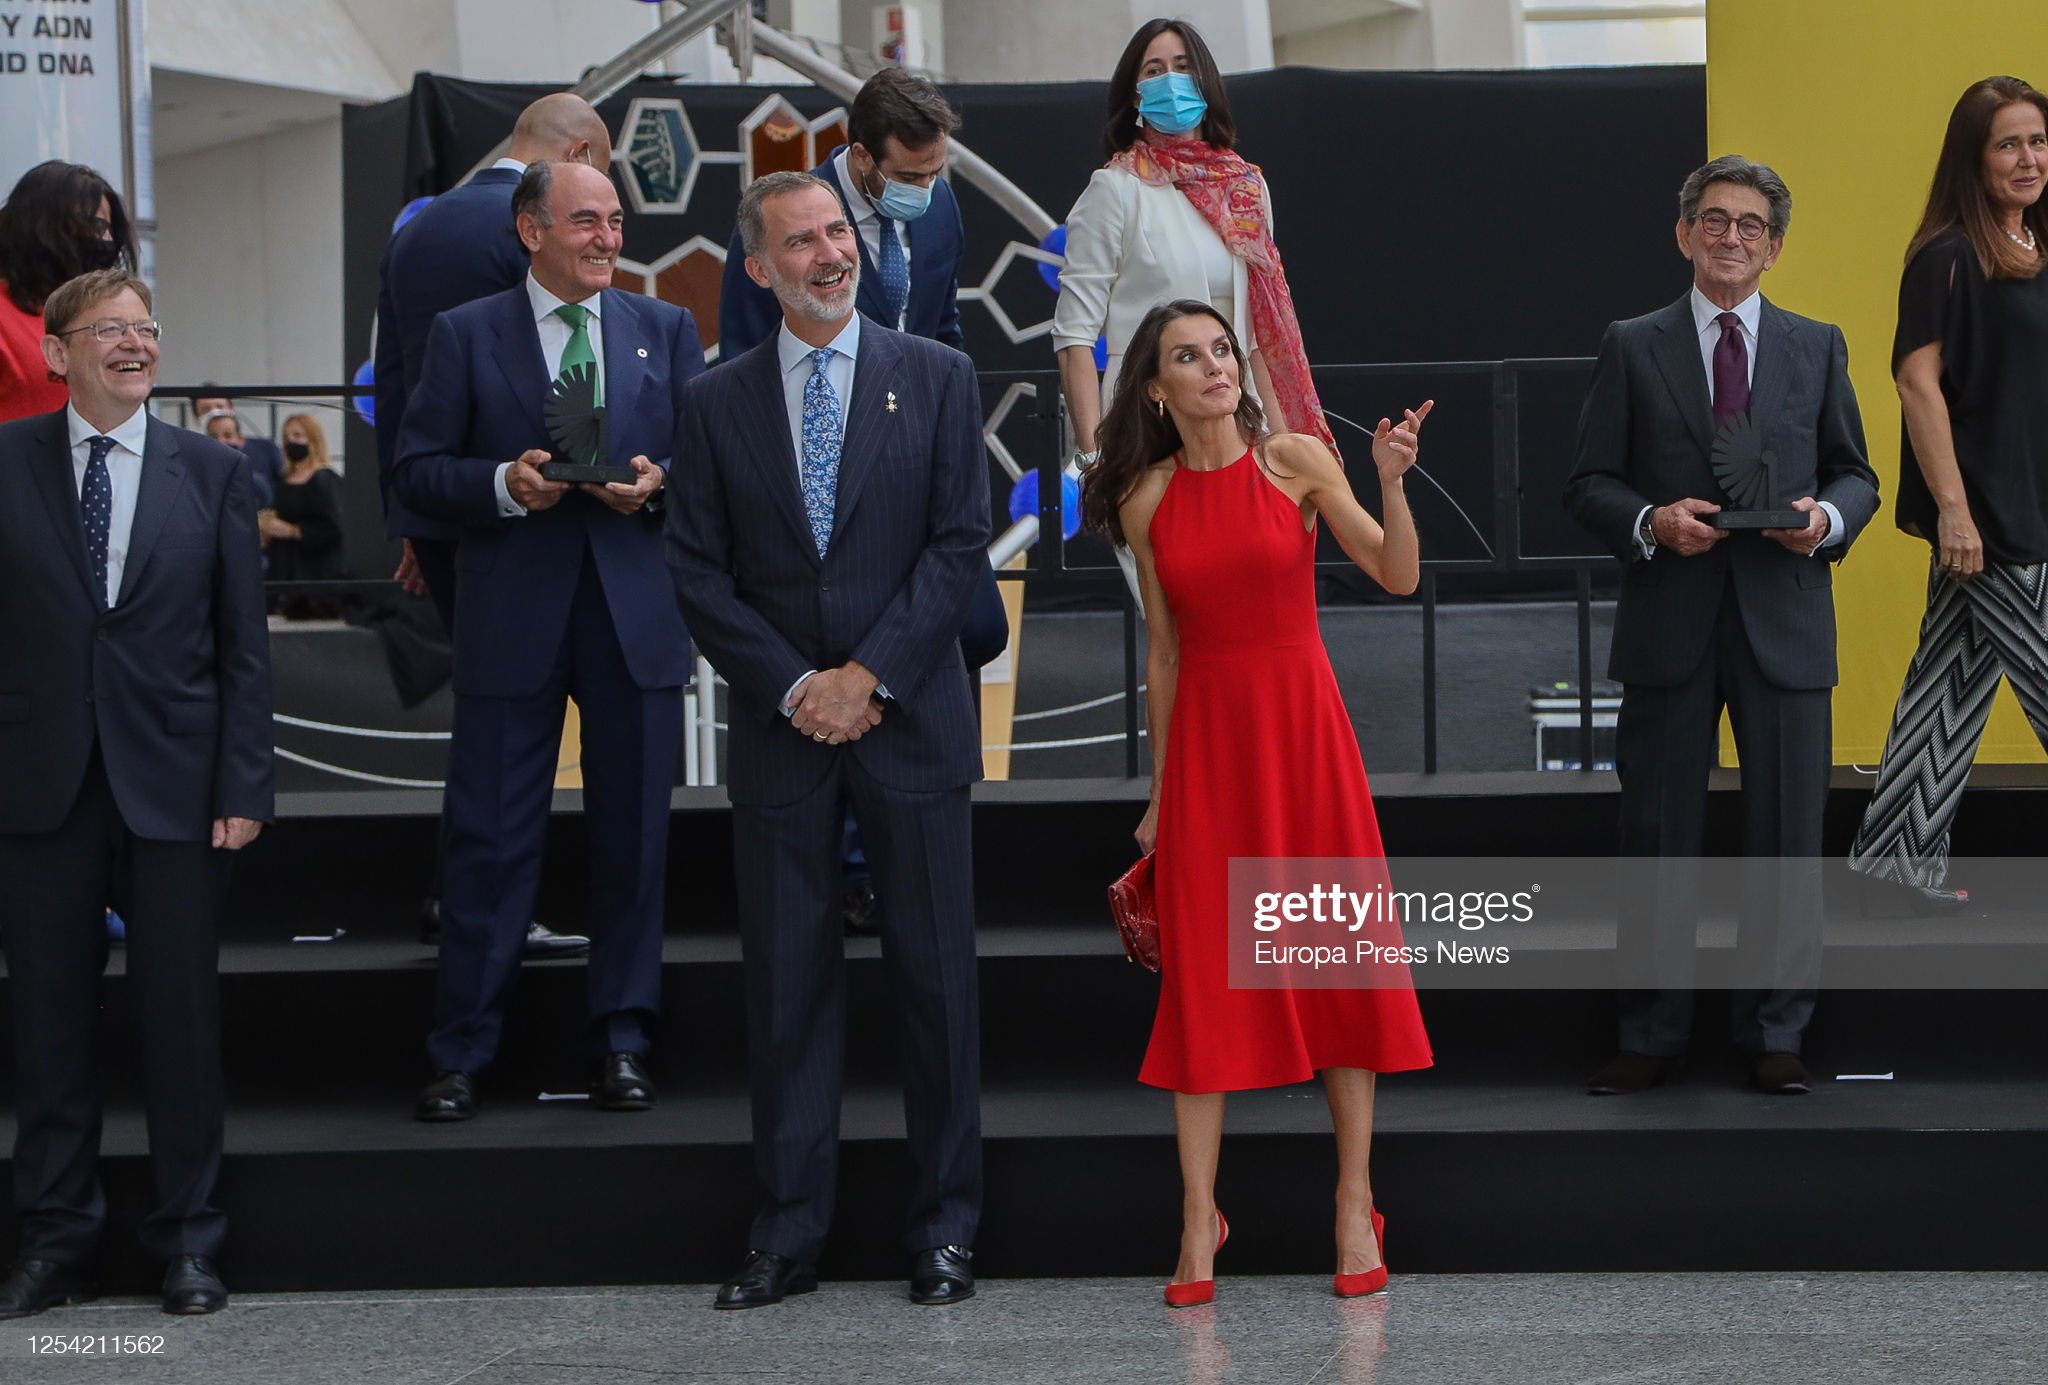 https://media.gettyimages.com/photos/king-felipe-vi-and-queen-letizia-of-spain-preside-over-the-ceremony-picture-id1254211562?s=2048x2048